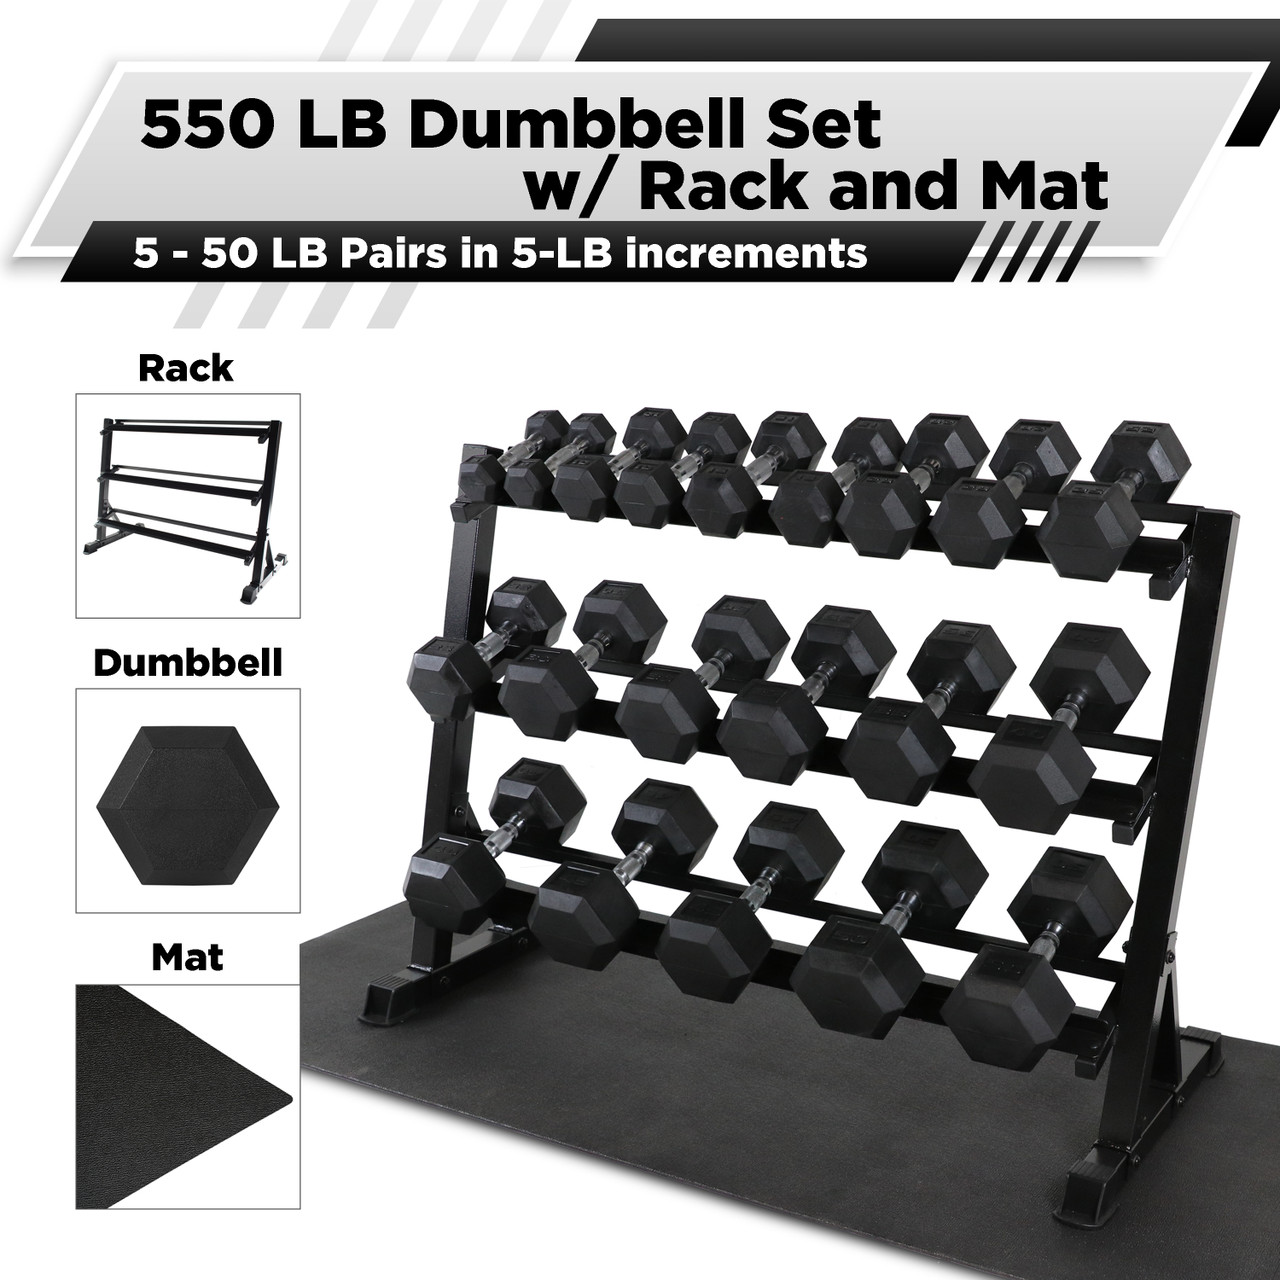 cap barbell rubber hex 550 pound dumbbell set with 3 tier 51 rack and mat 5 50lb pairs